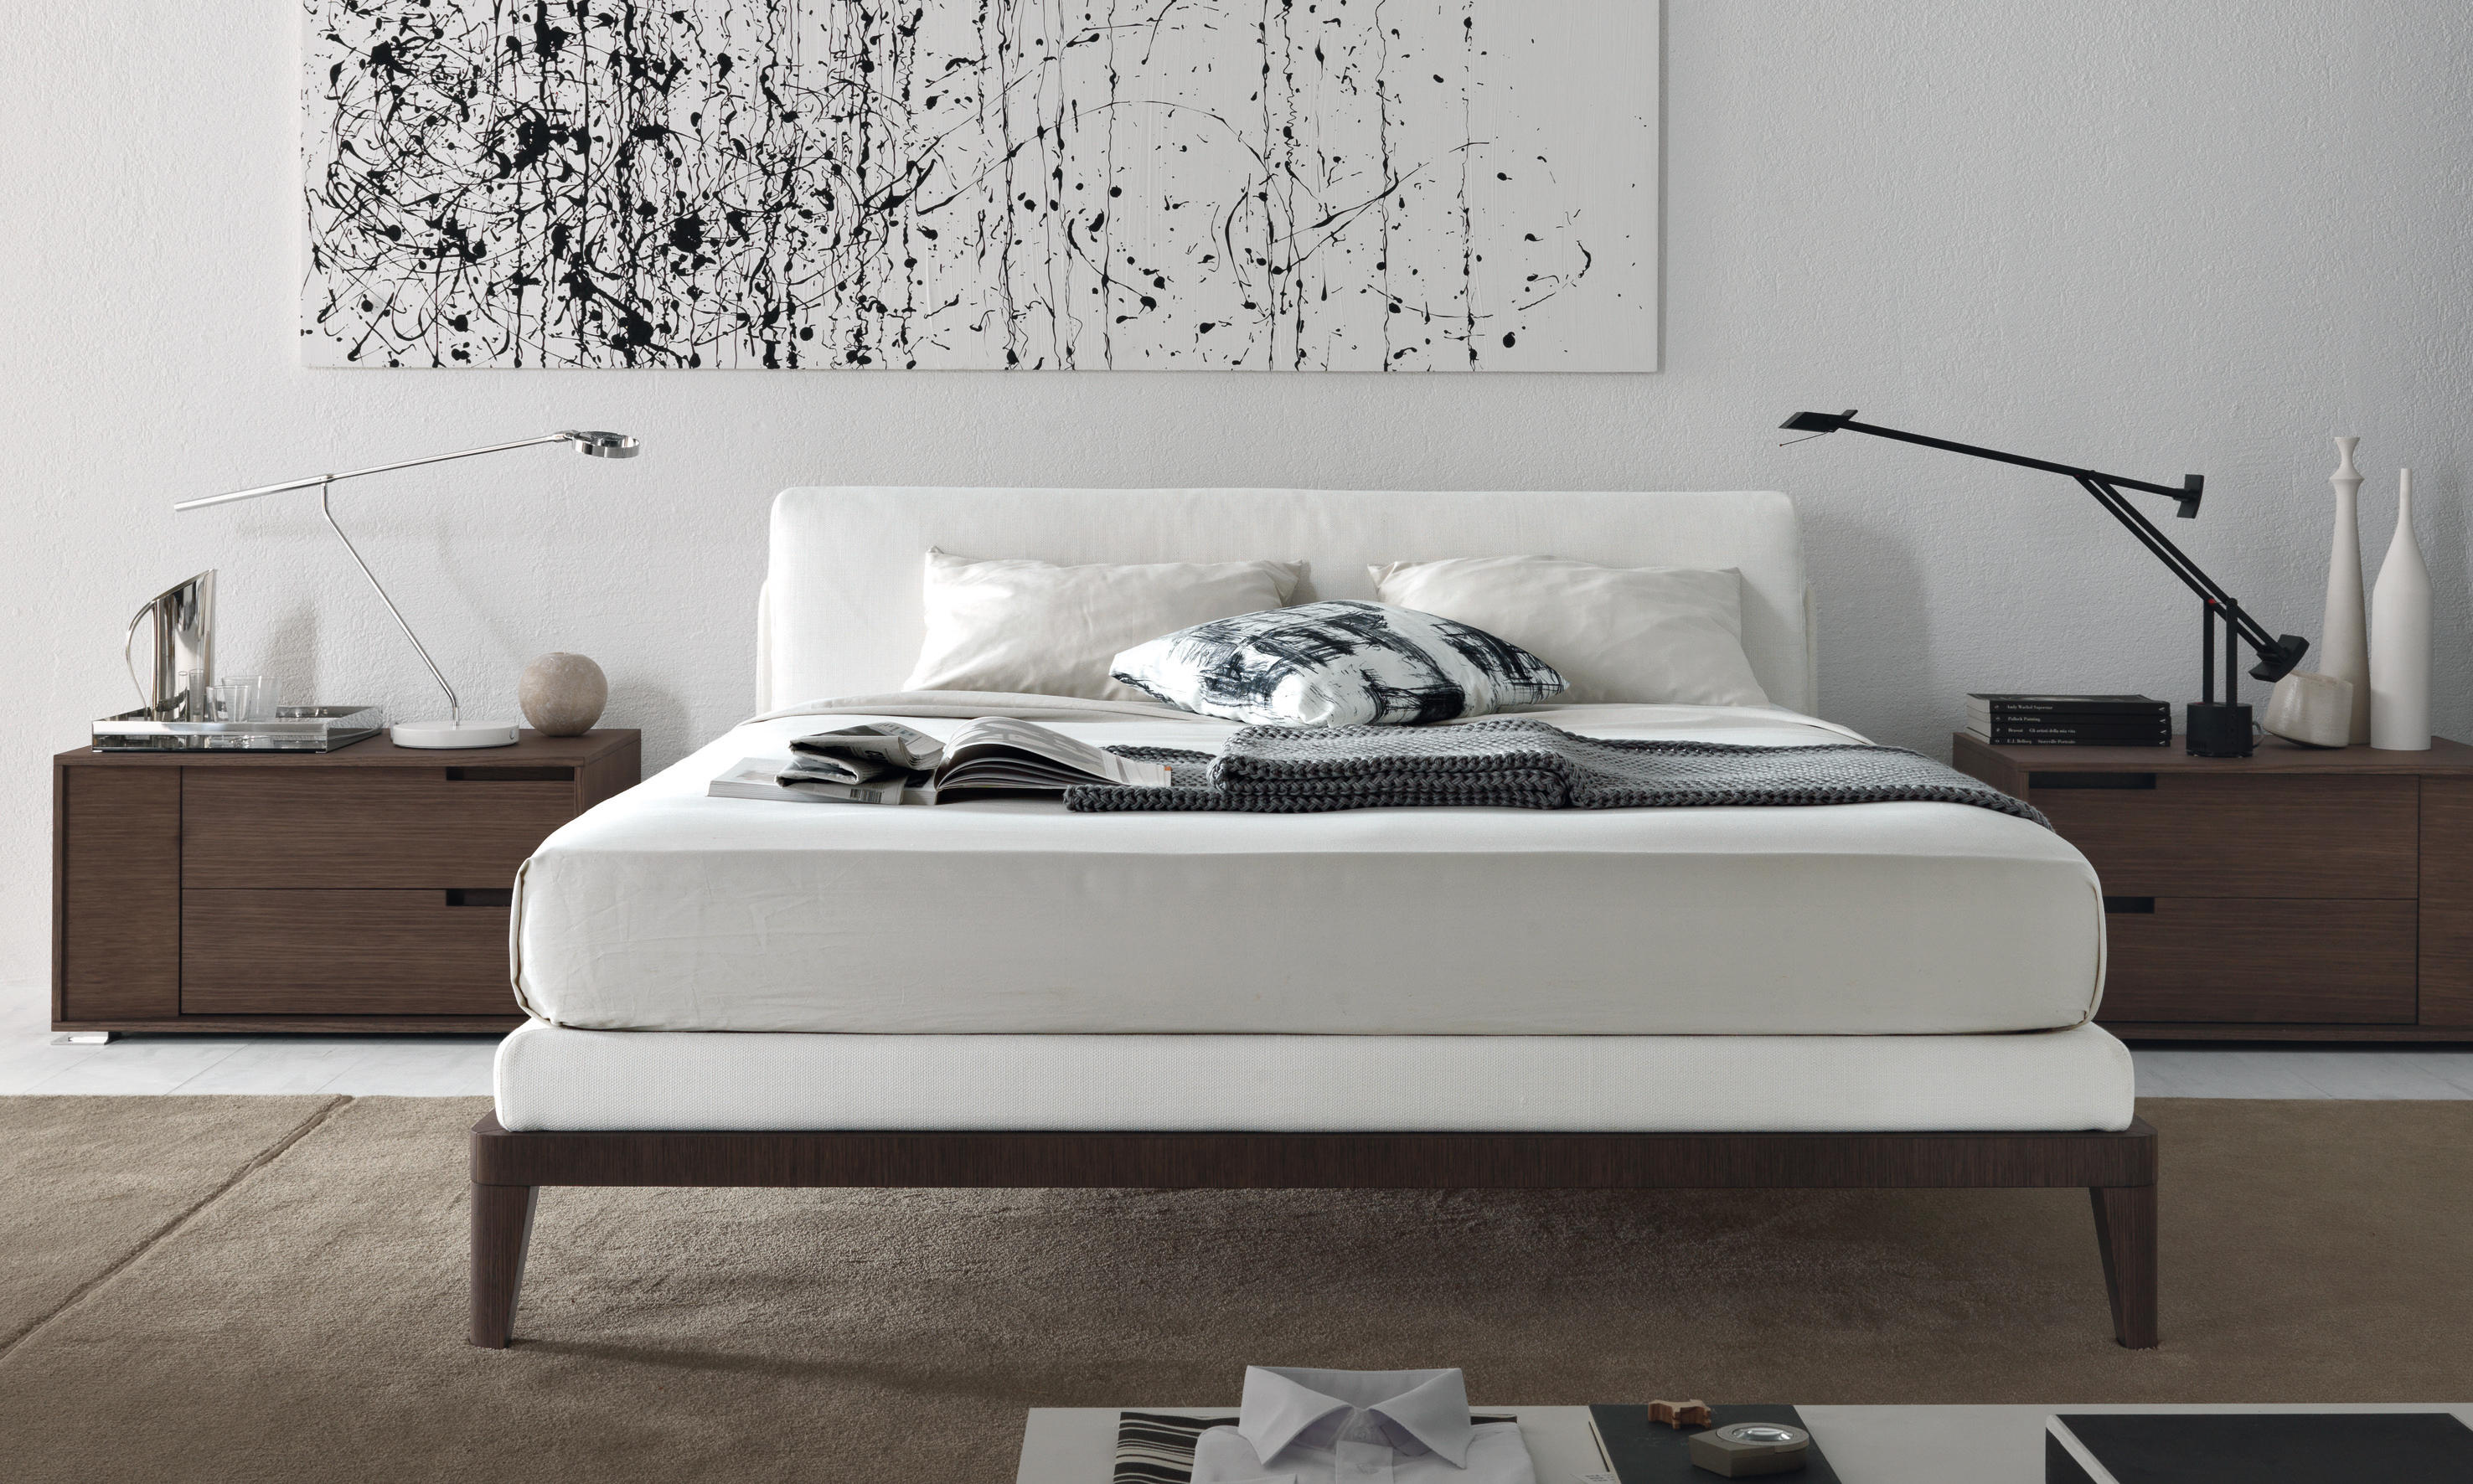 Assuan Double Beds From Misura Emme Architonic